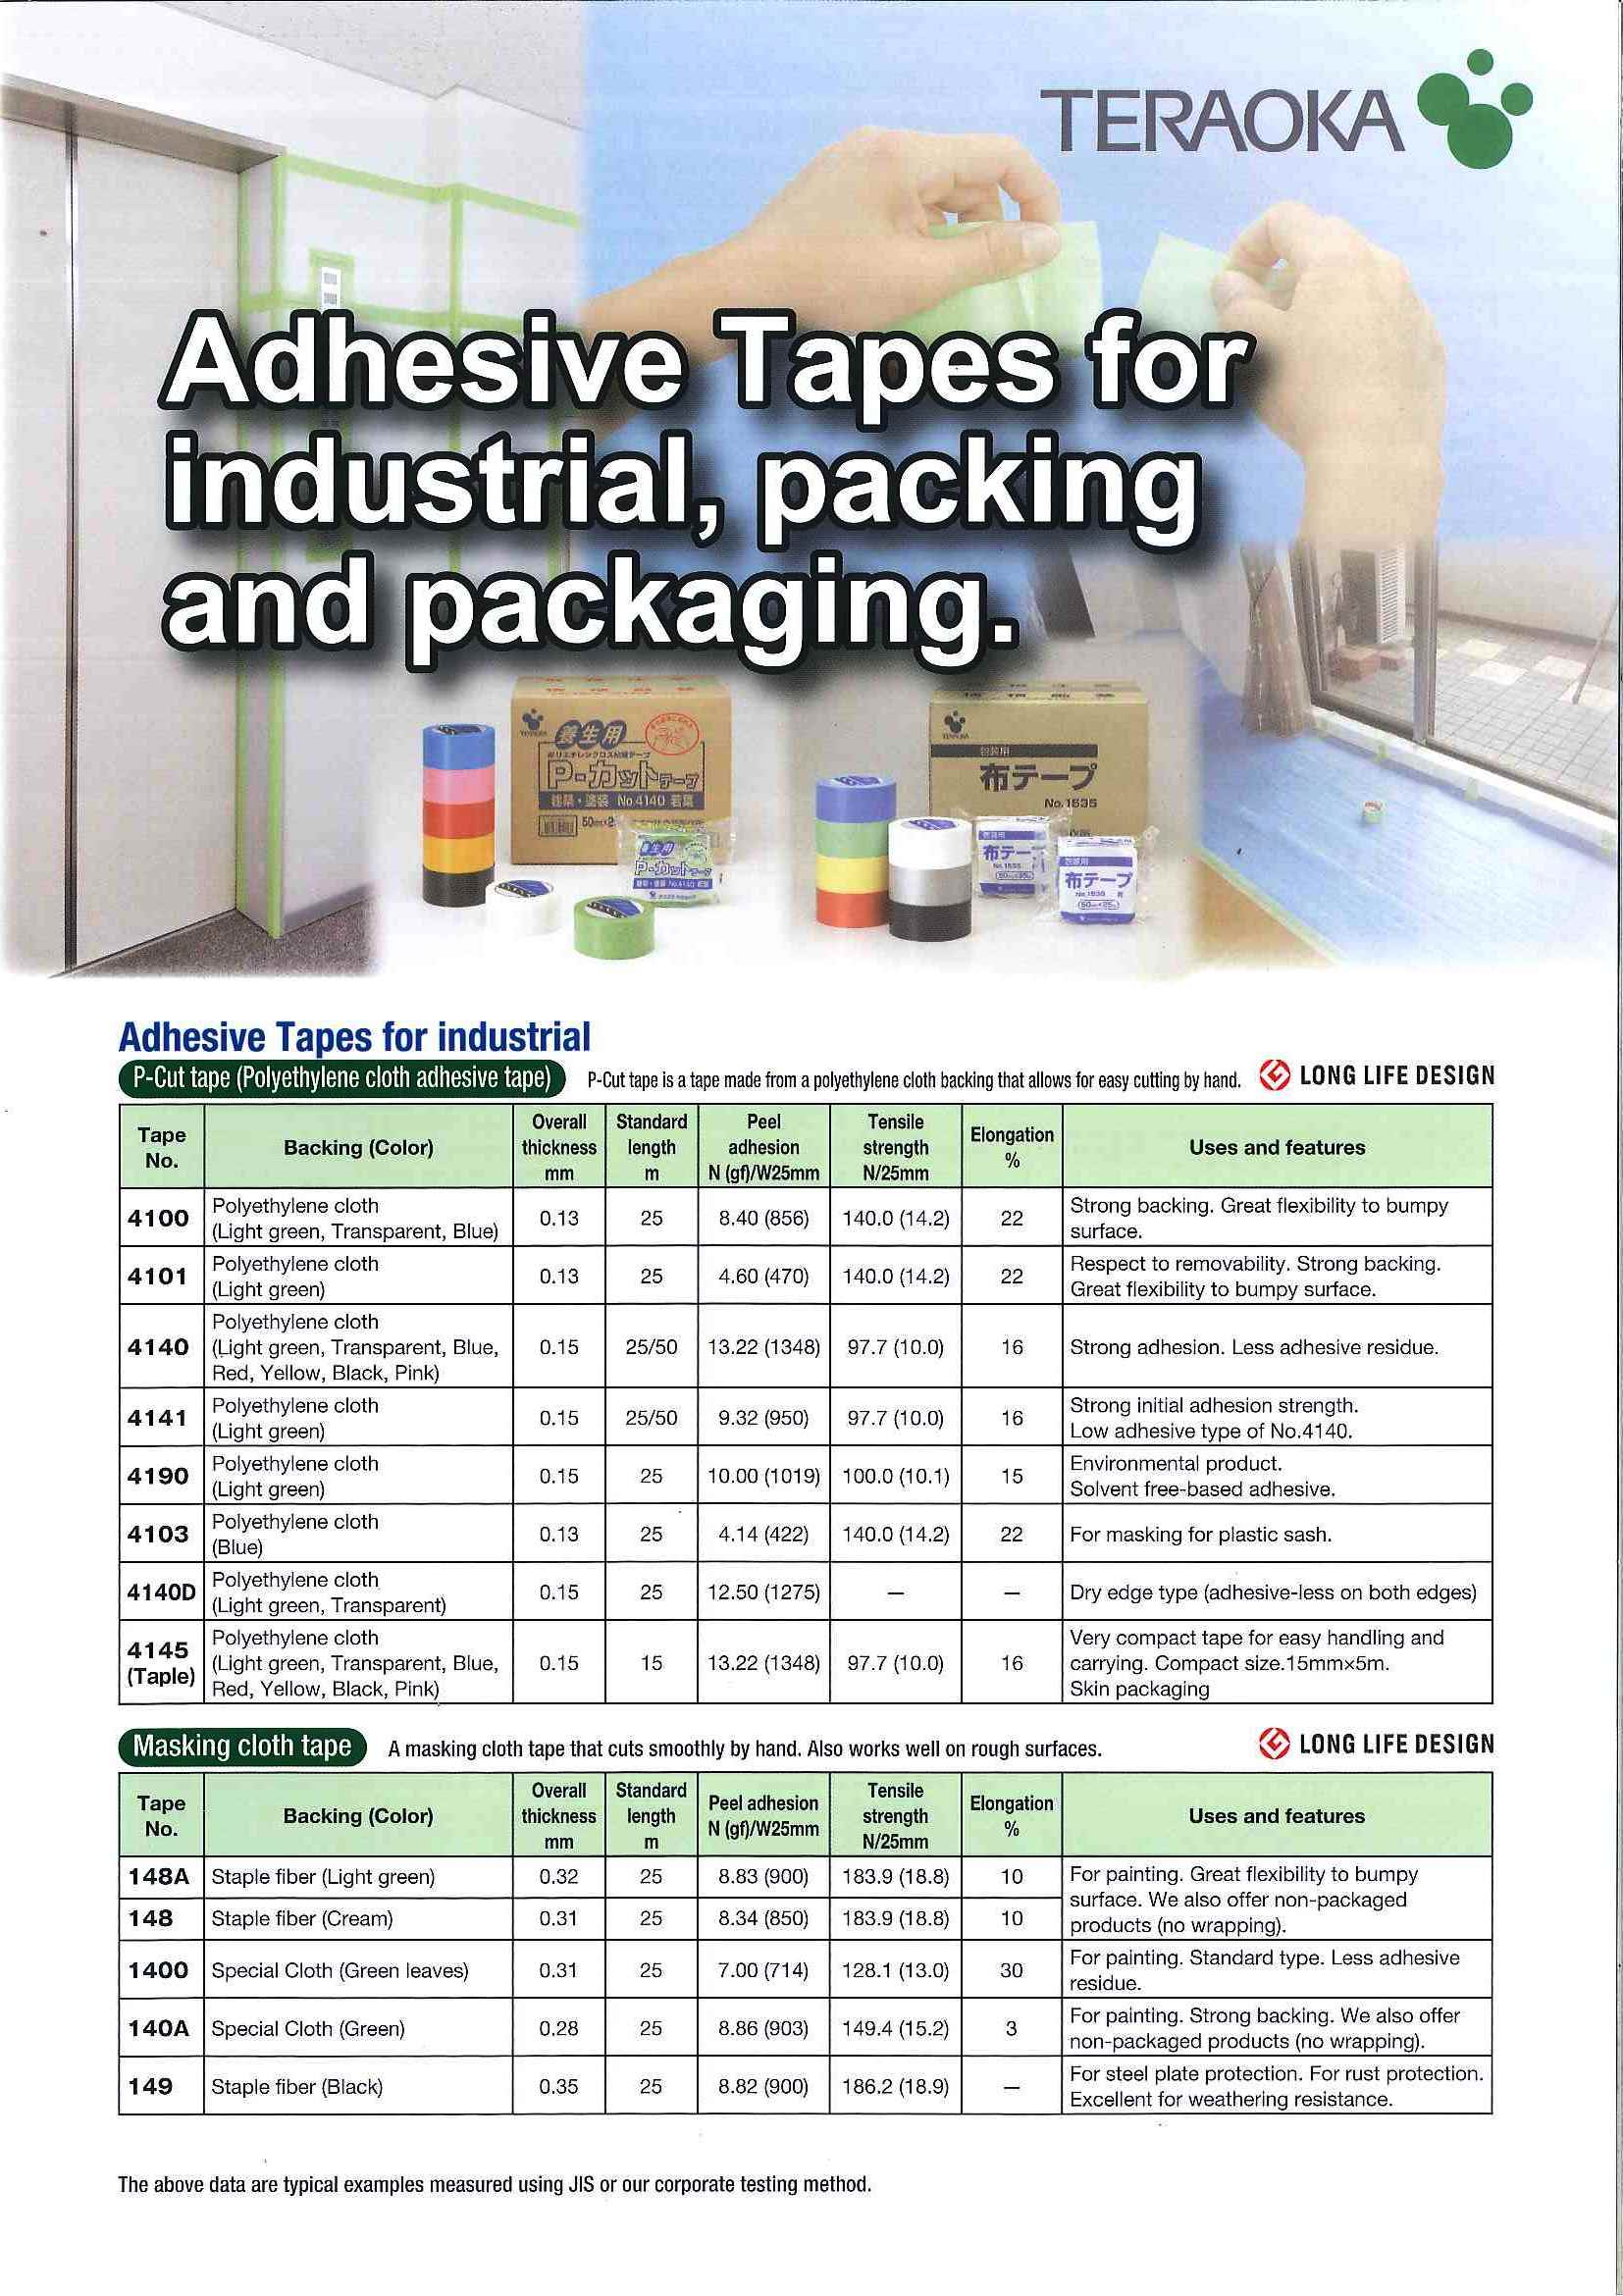 Adhesive Tapes for industrial, packing and packaging Catalog